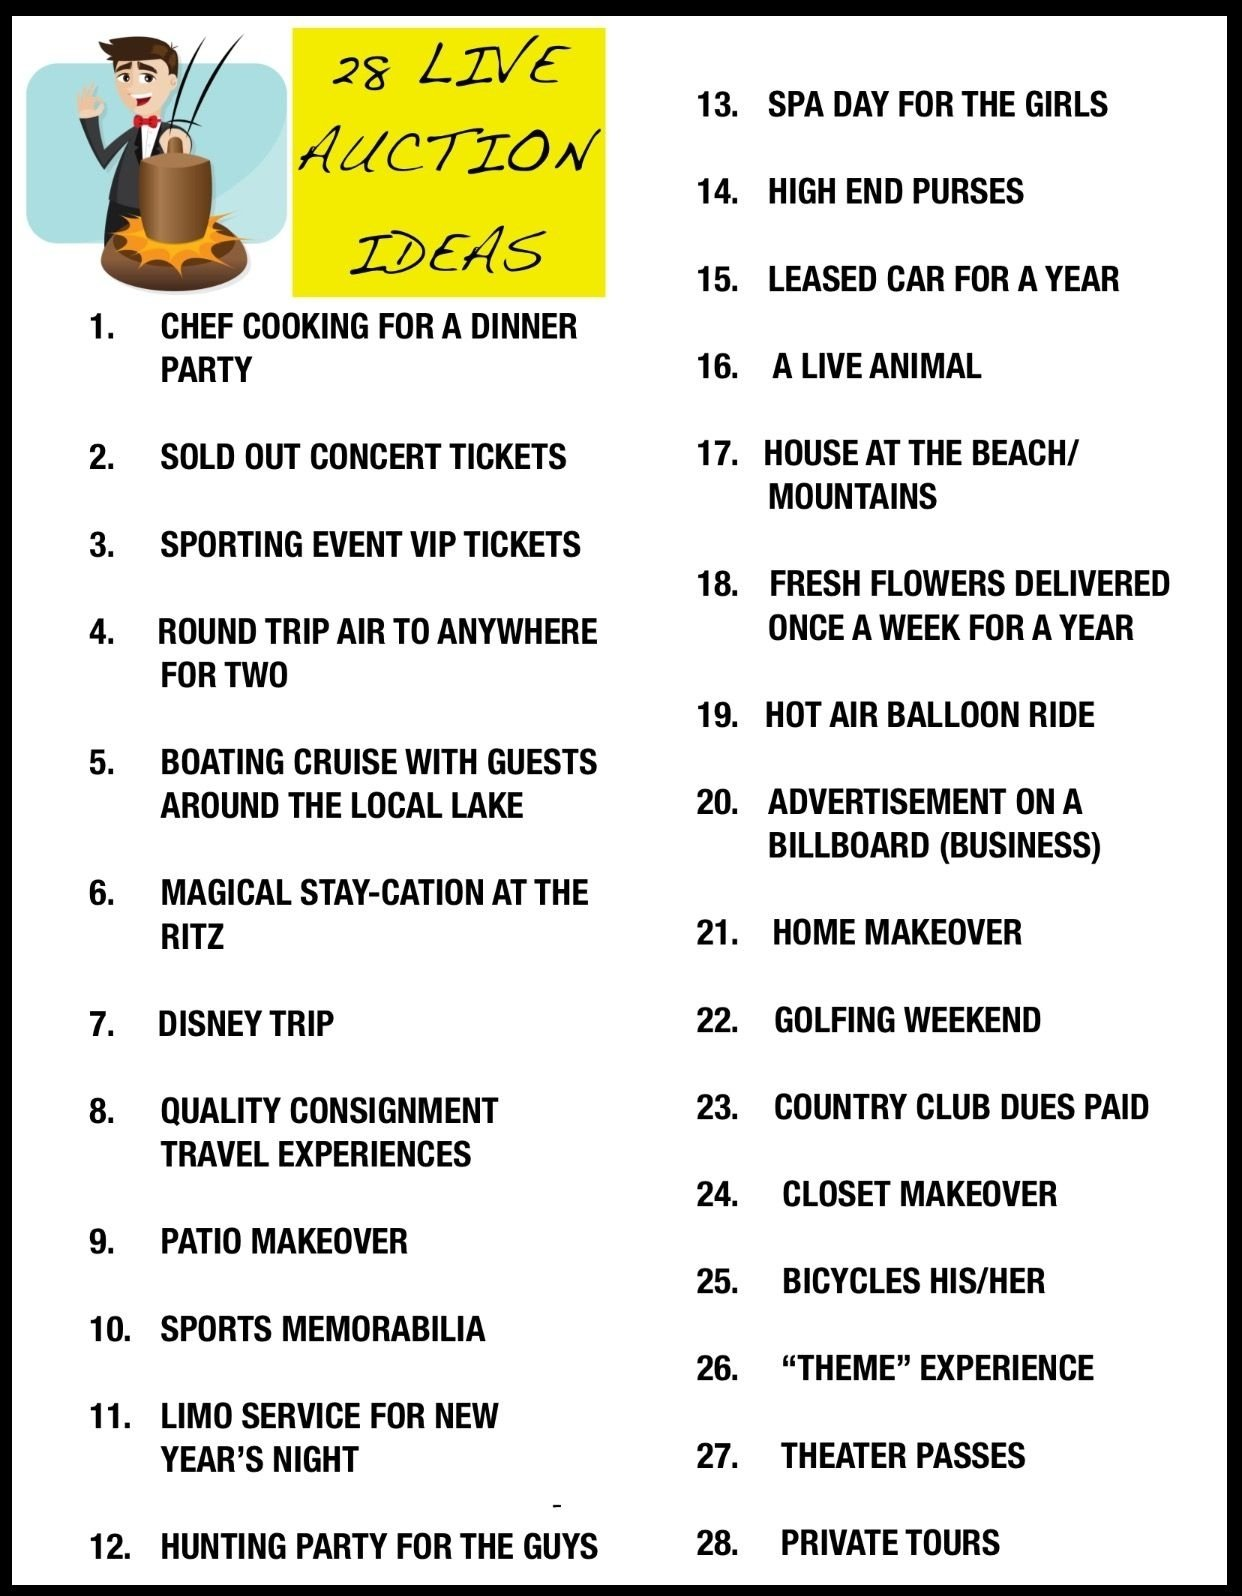 10 Fabulous Ideas For Fundraising For School live auction ideas for charity events silent auction ideas 8 2021